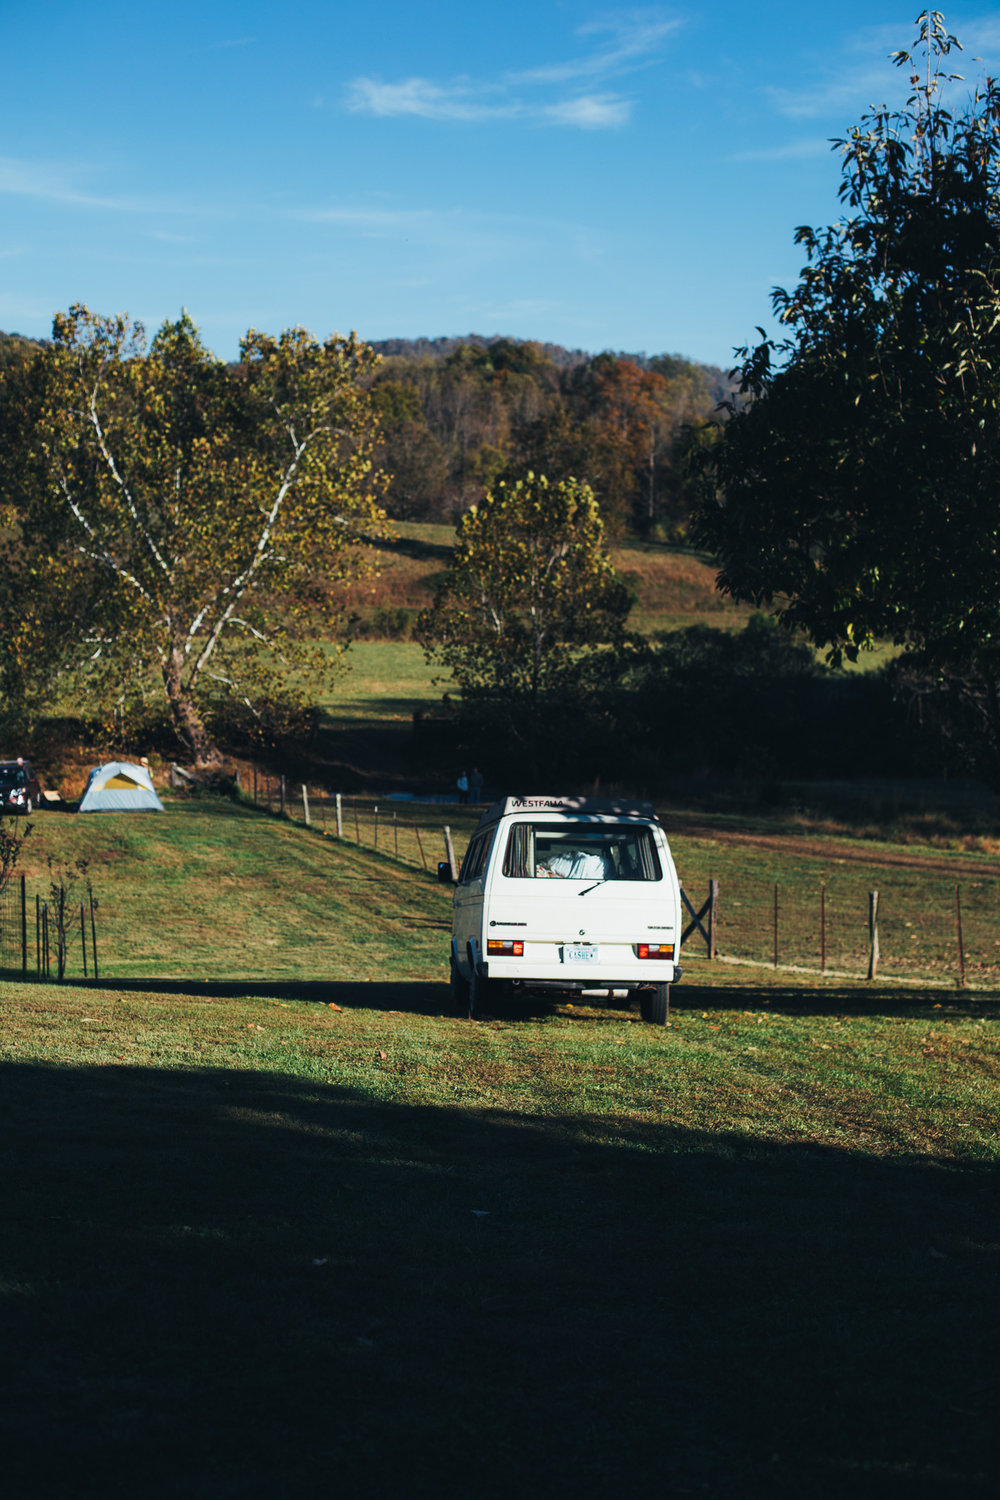 weekend wanders in virginia | willfrolicforfood.com